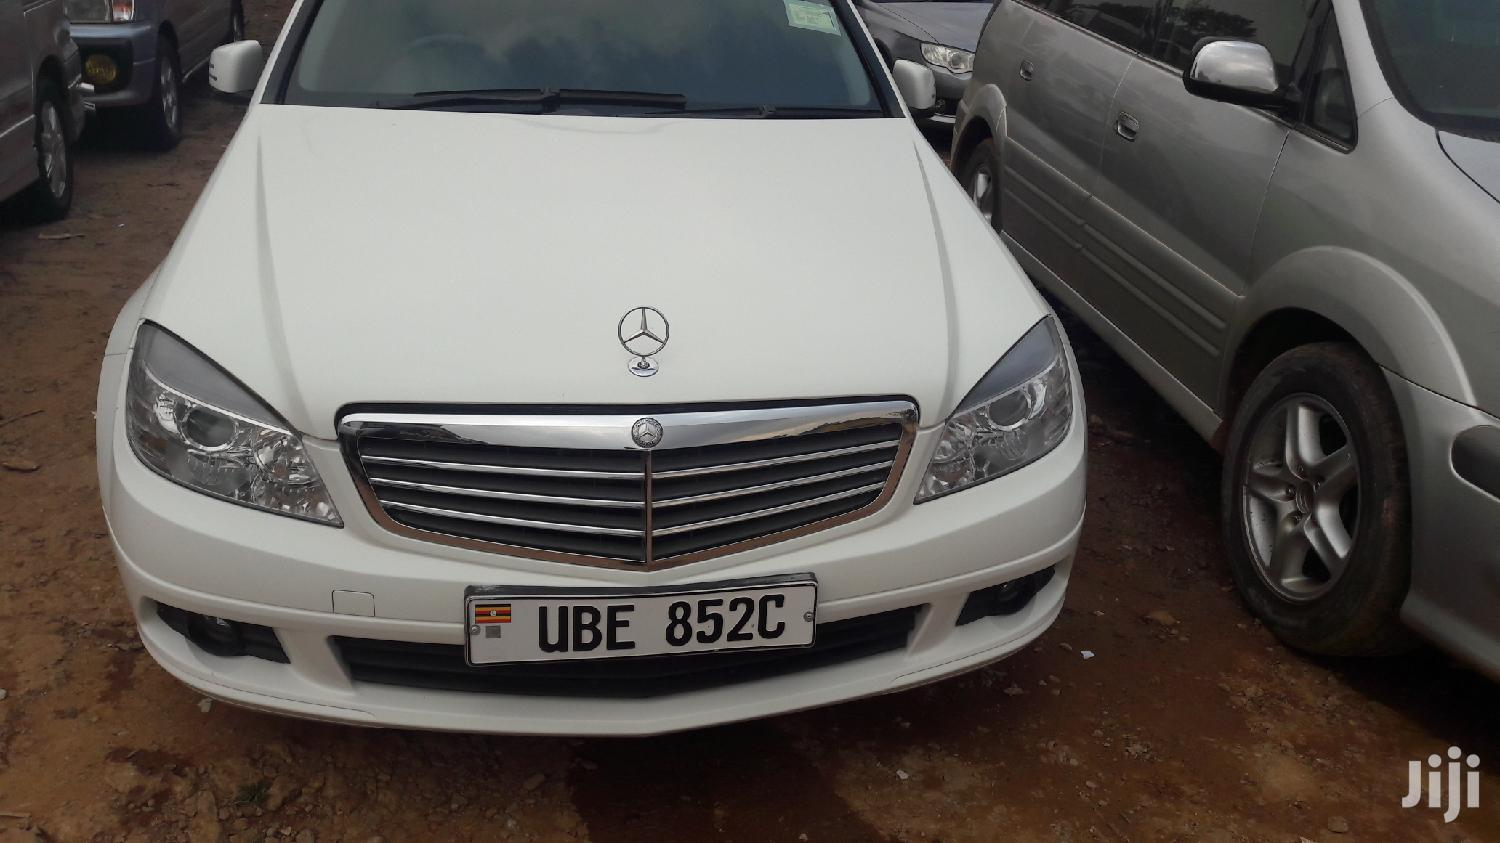 Mercedes-Benz C200 2008 White | Cars for sale in Kampala, Central Region, Uganda